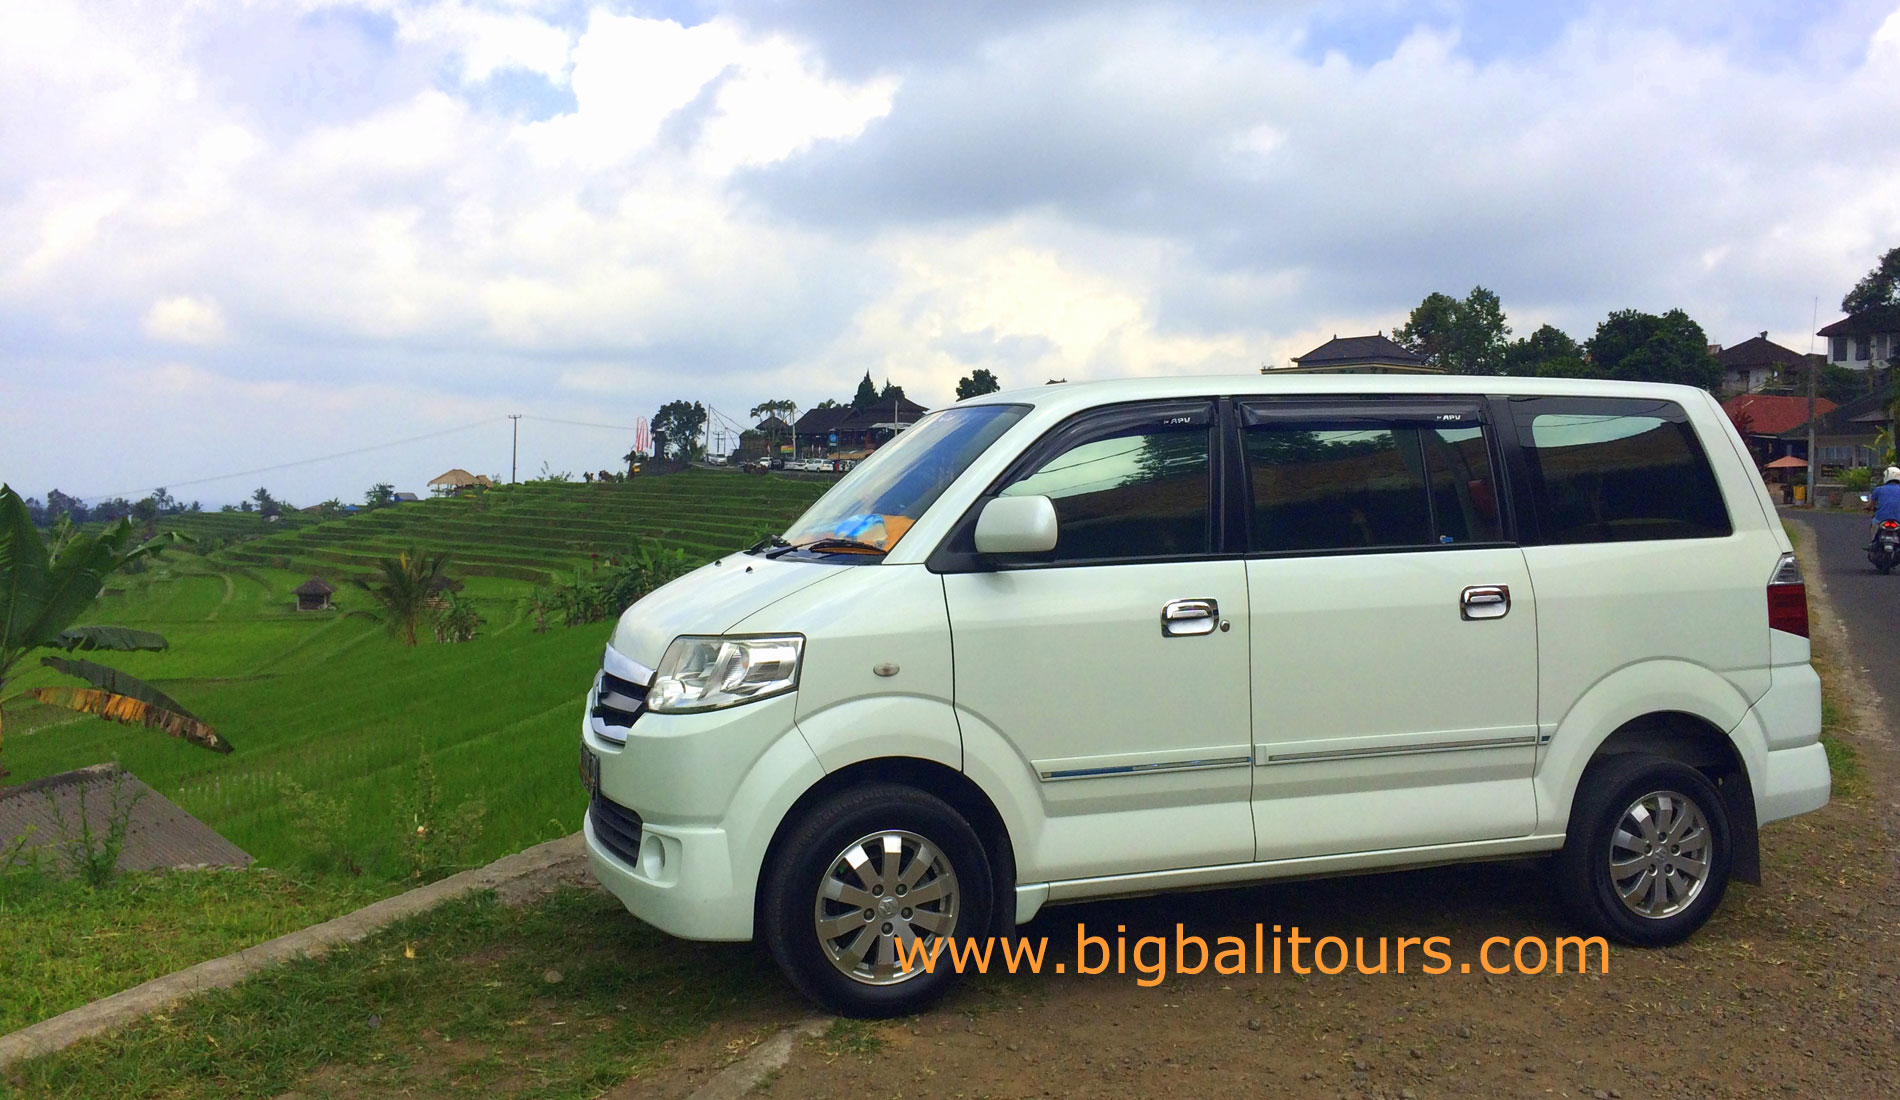 Car - Bali Tours Activities